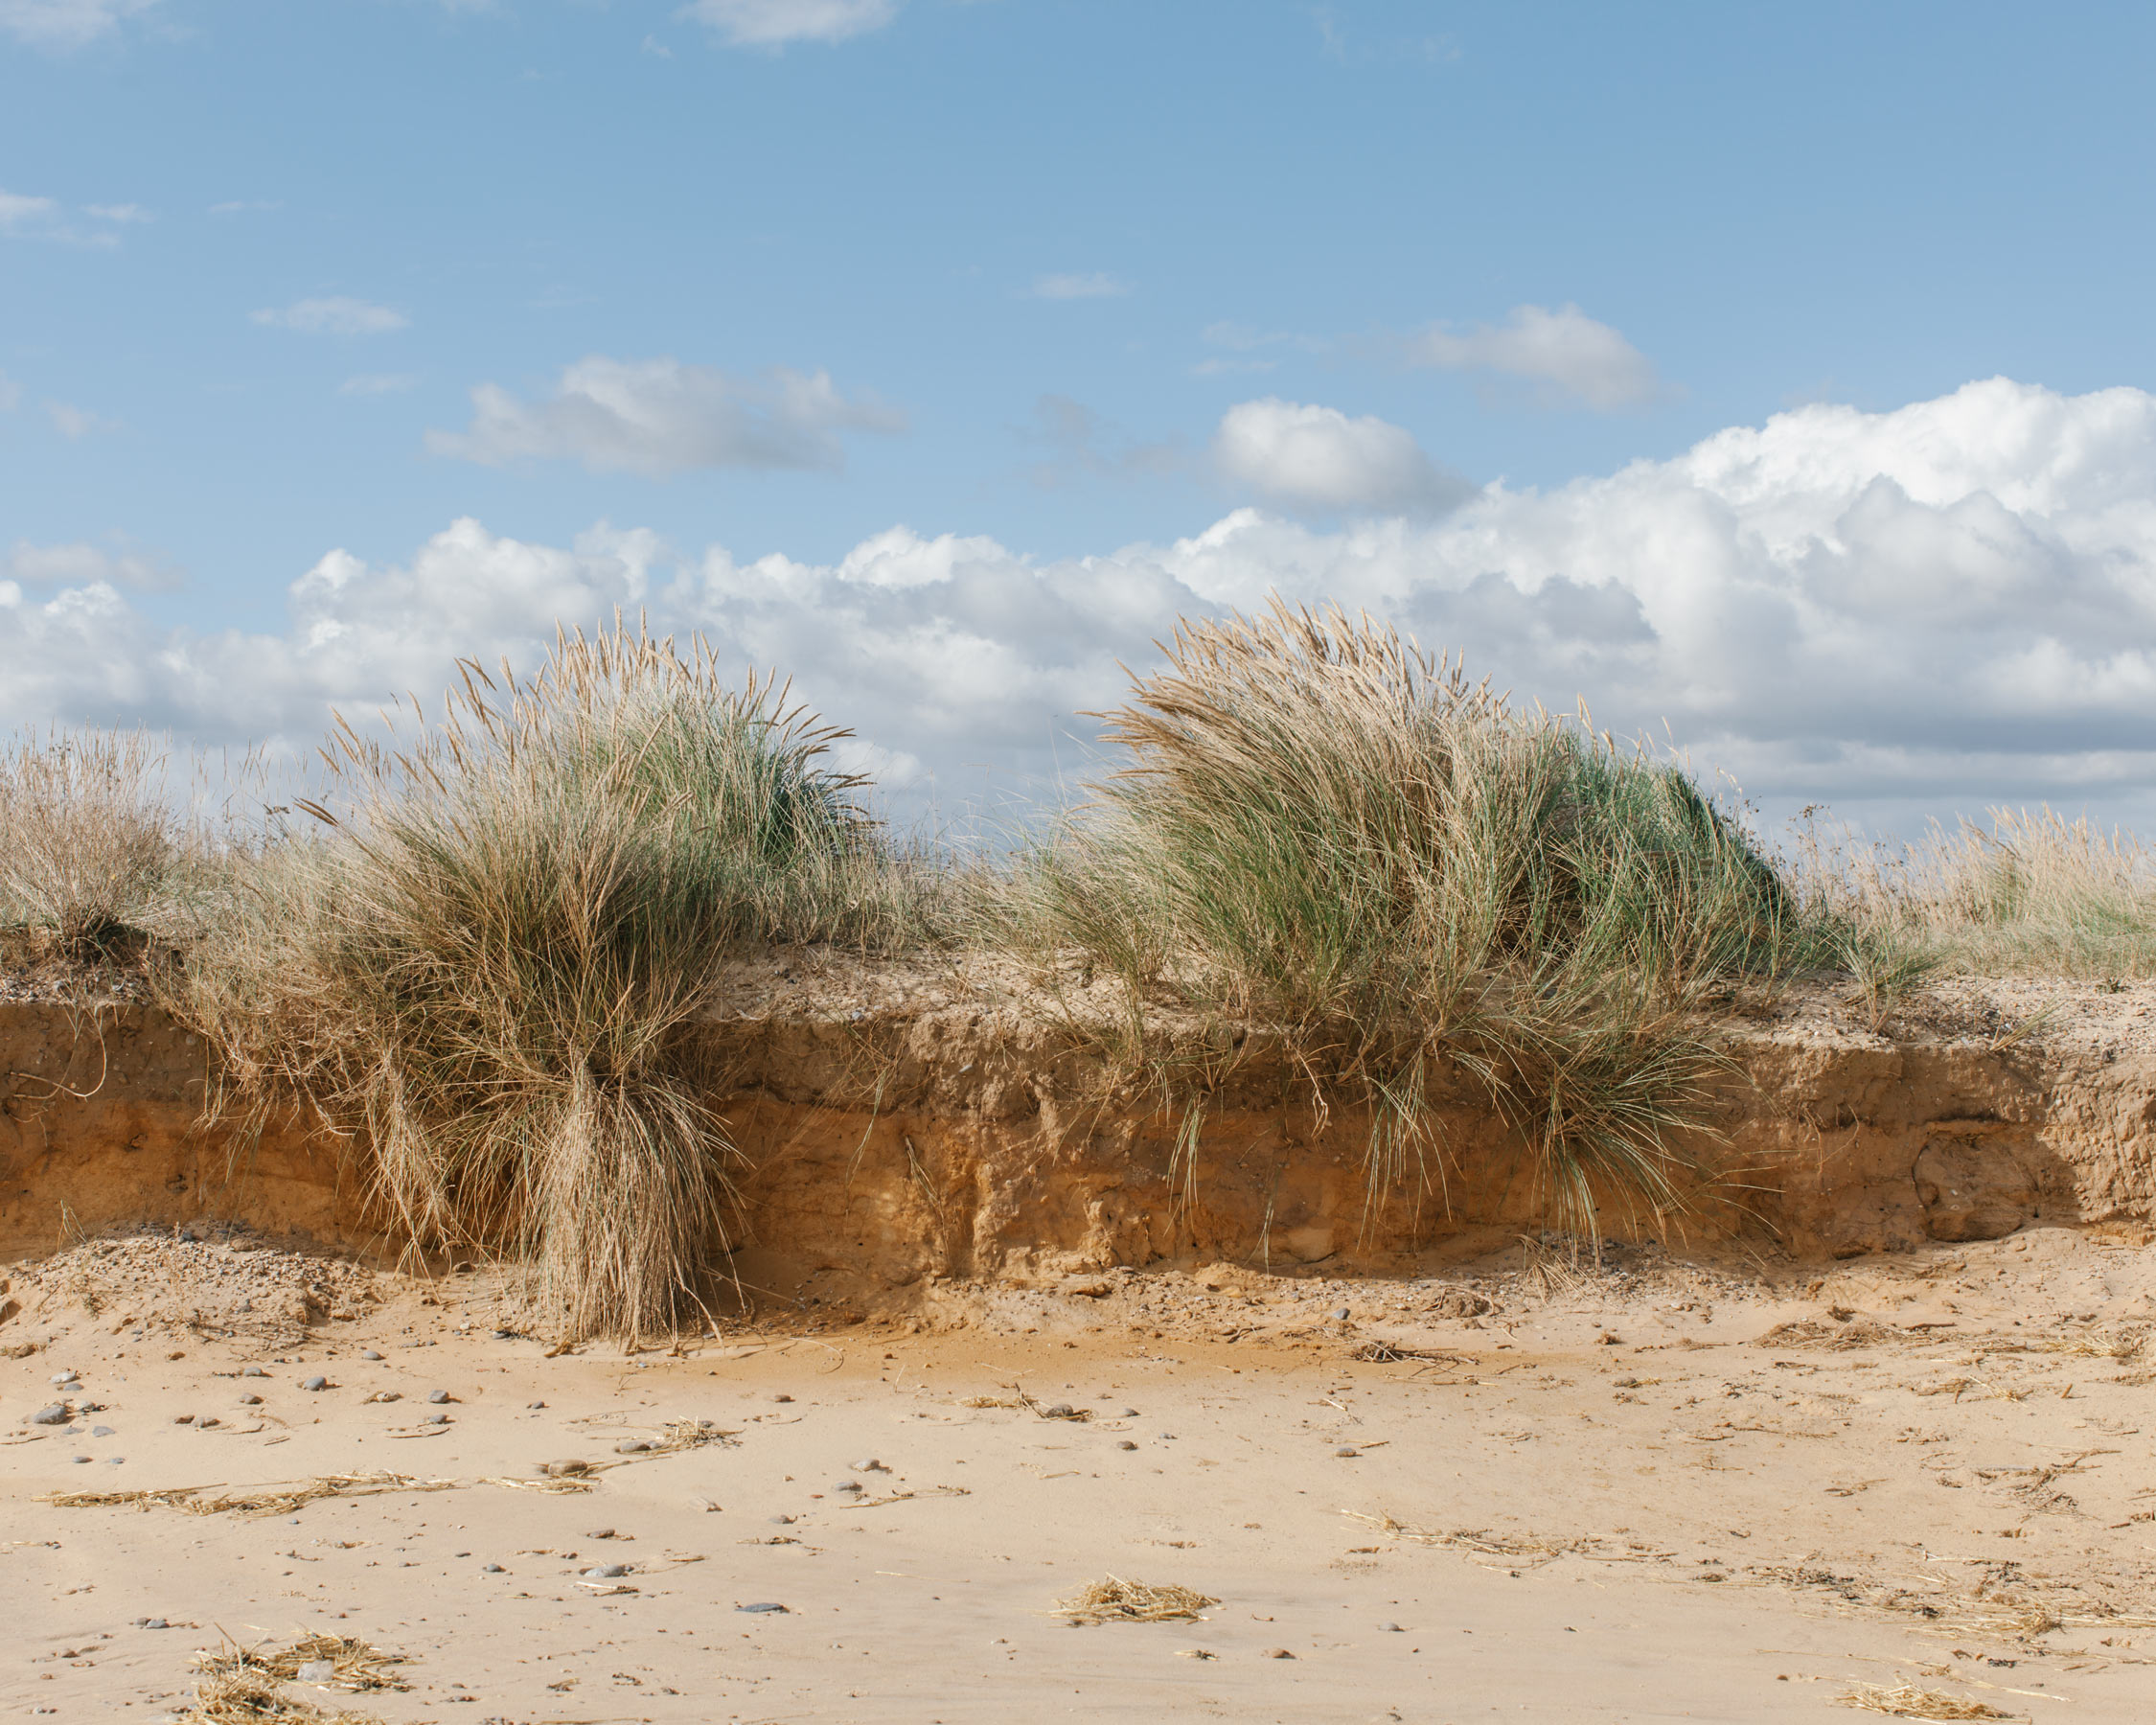 A mere 450,000 years ago the land groaned under an ice sheet perhaps half a mile thick. Each period has left a temporary legacy in the rocks of Suffolk: a wealth of sands, gravels, silts, clays and limestones.